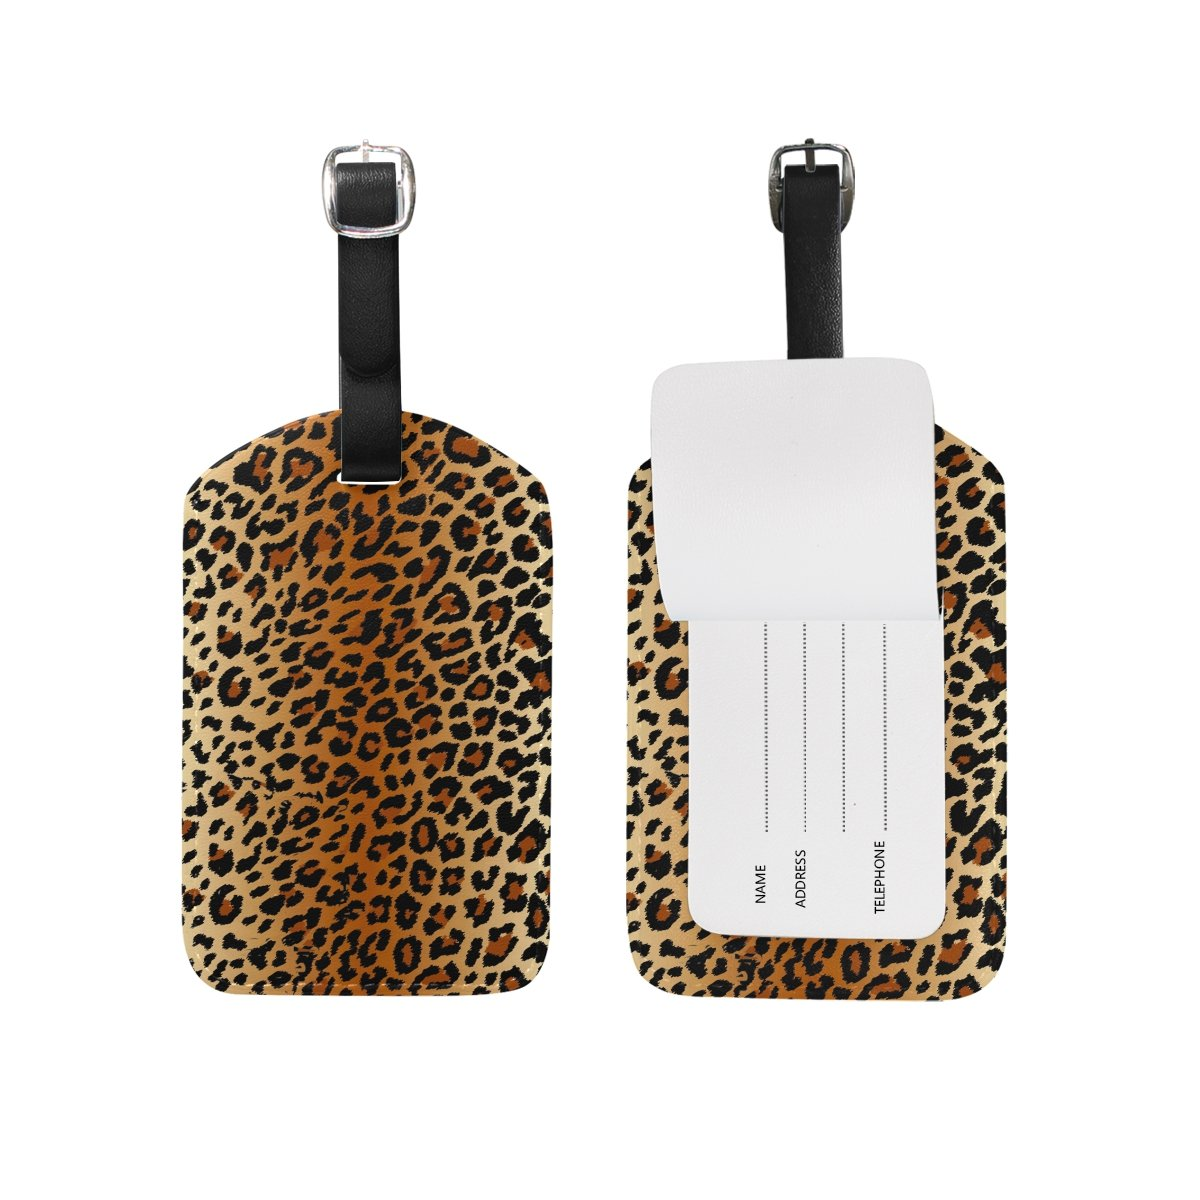 Leopard Print Leather Travel Tour Luggage Handbag Personalized Tags Card Labels (2pcs)